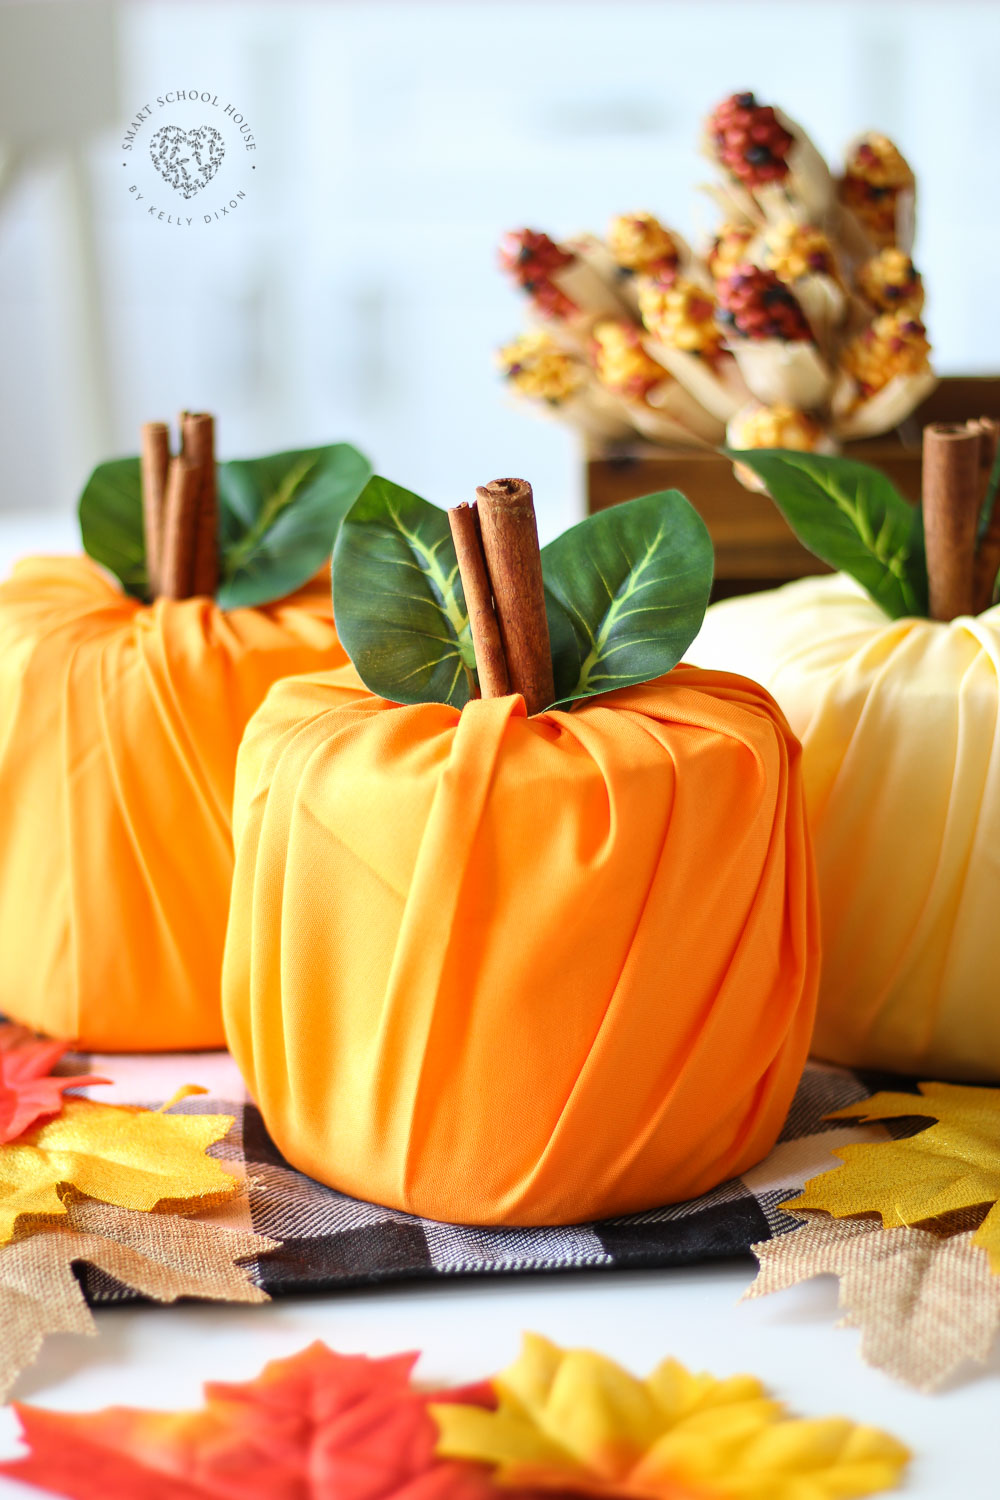 Toilet Paper Pumpkins!!! How to make pumpkins out of toilet paper. I LOVE THIS! #toiletpaperpumpkins #pumpkincrafts #DIYfalldecor